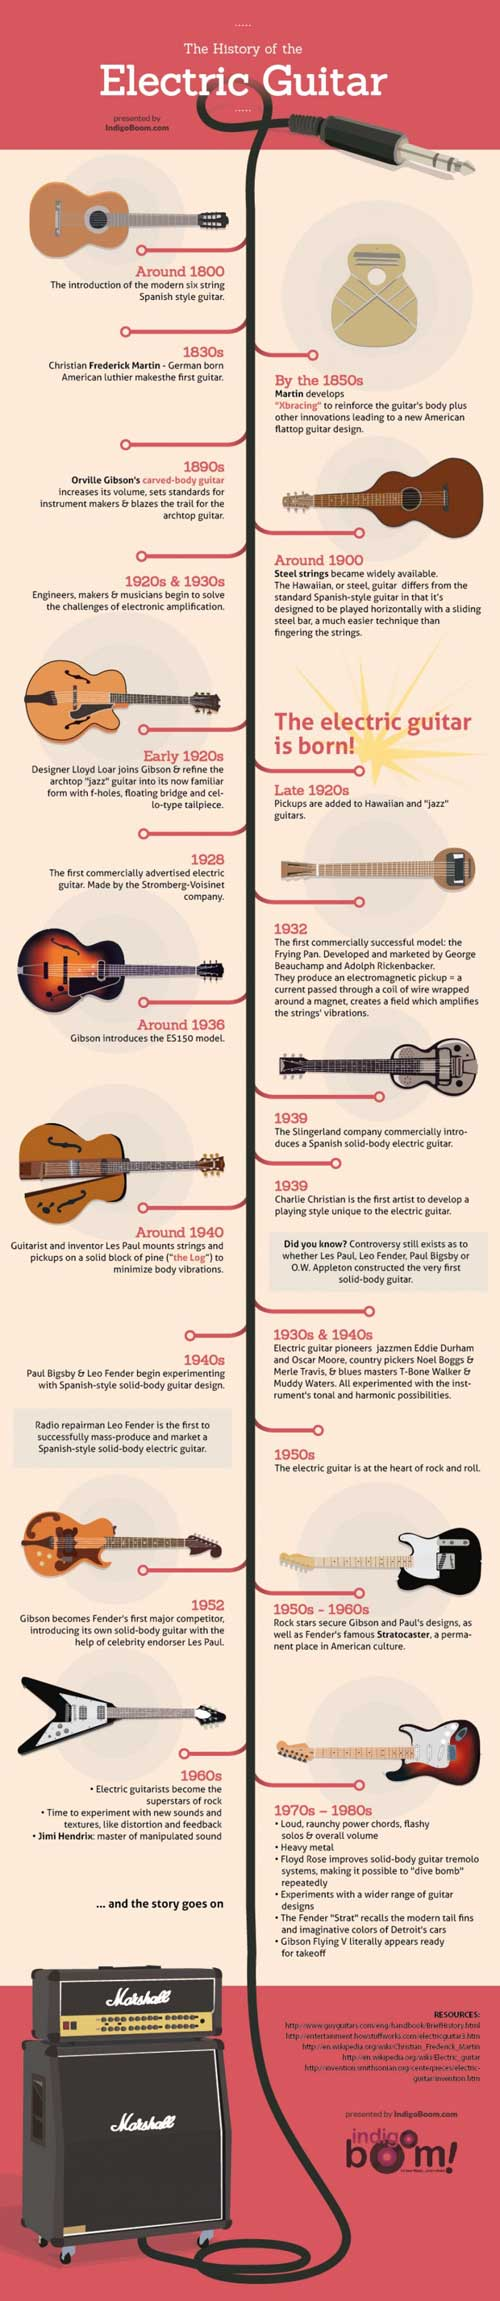 infographic-history-of-the-electric-guitar